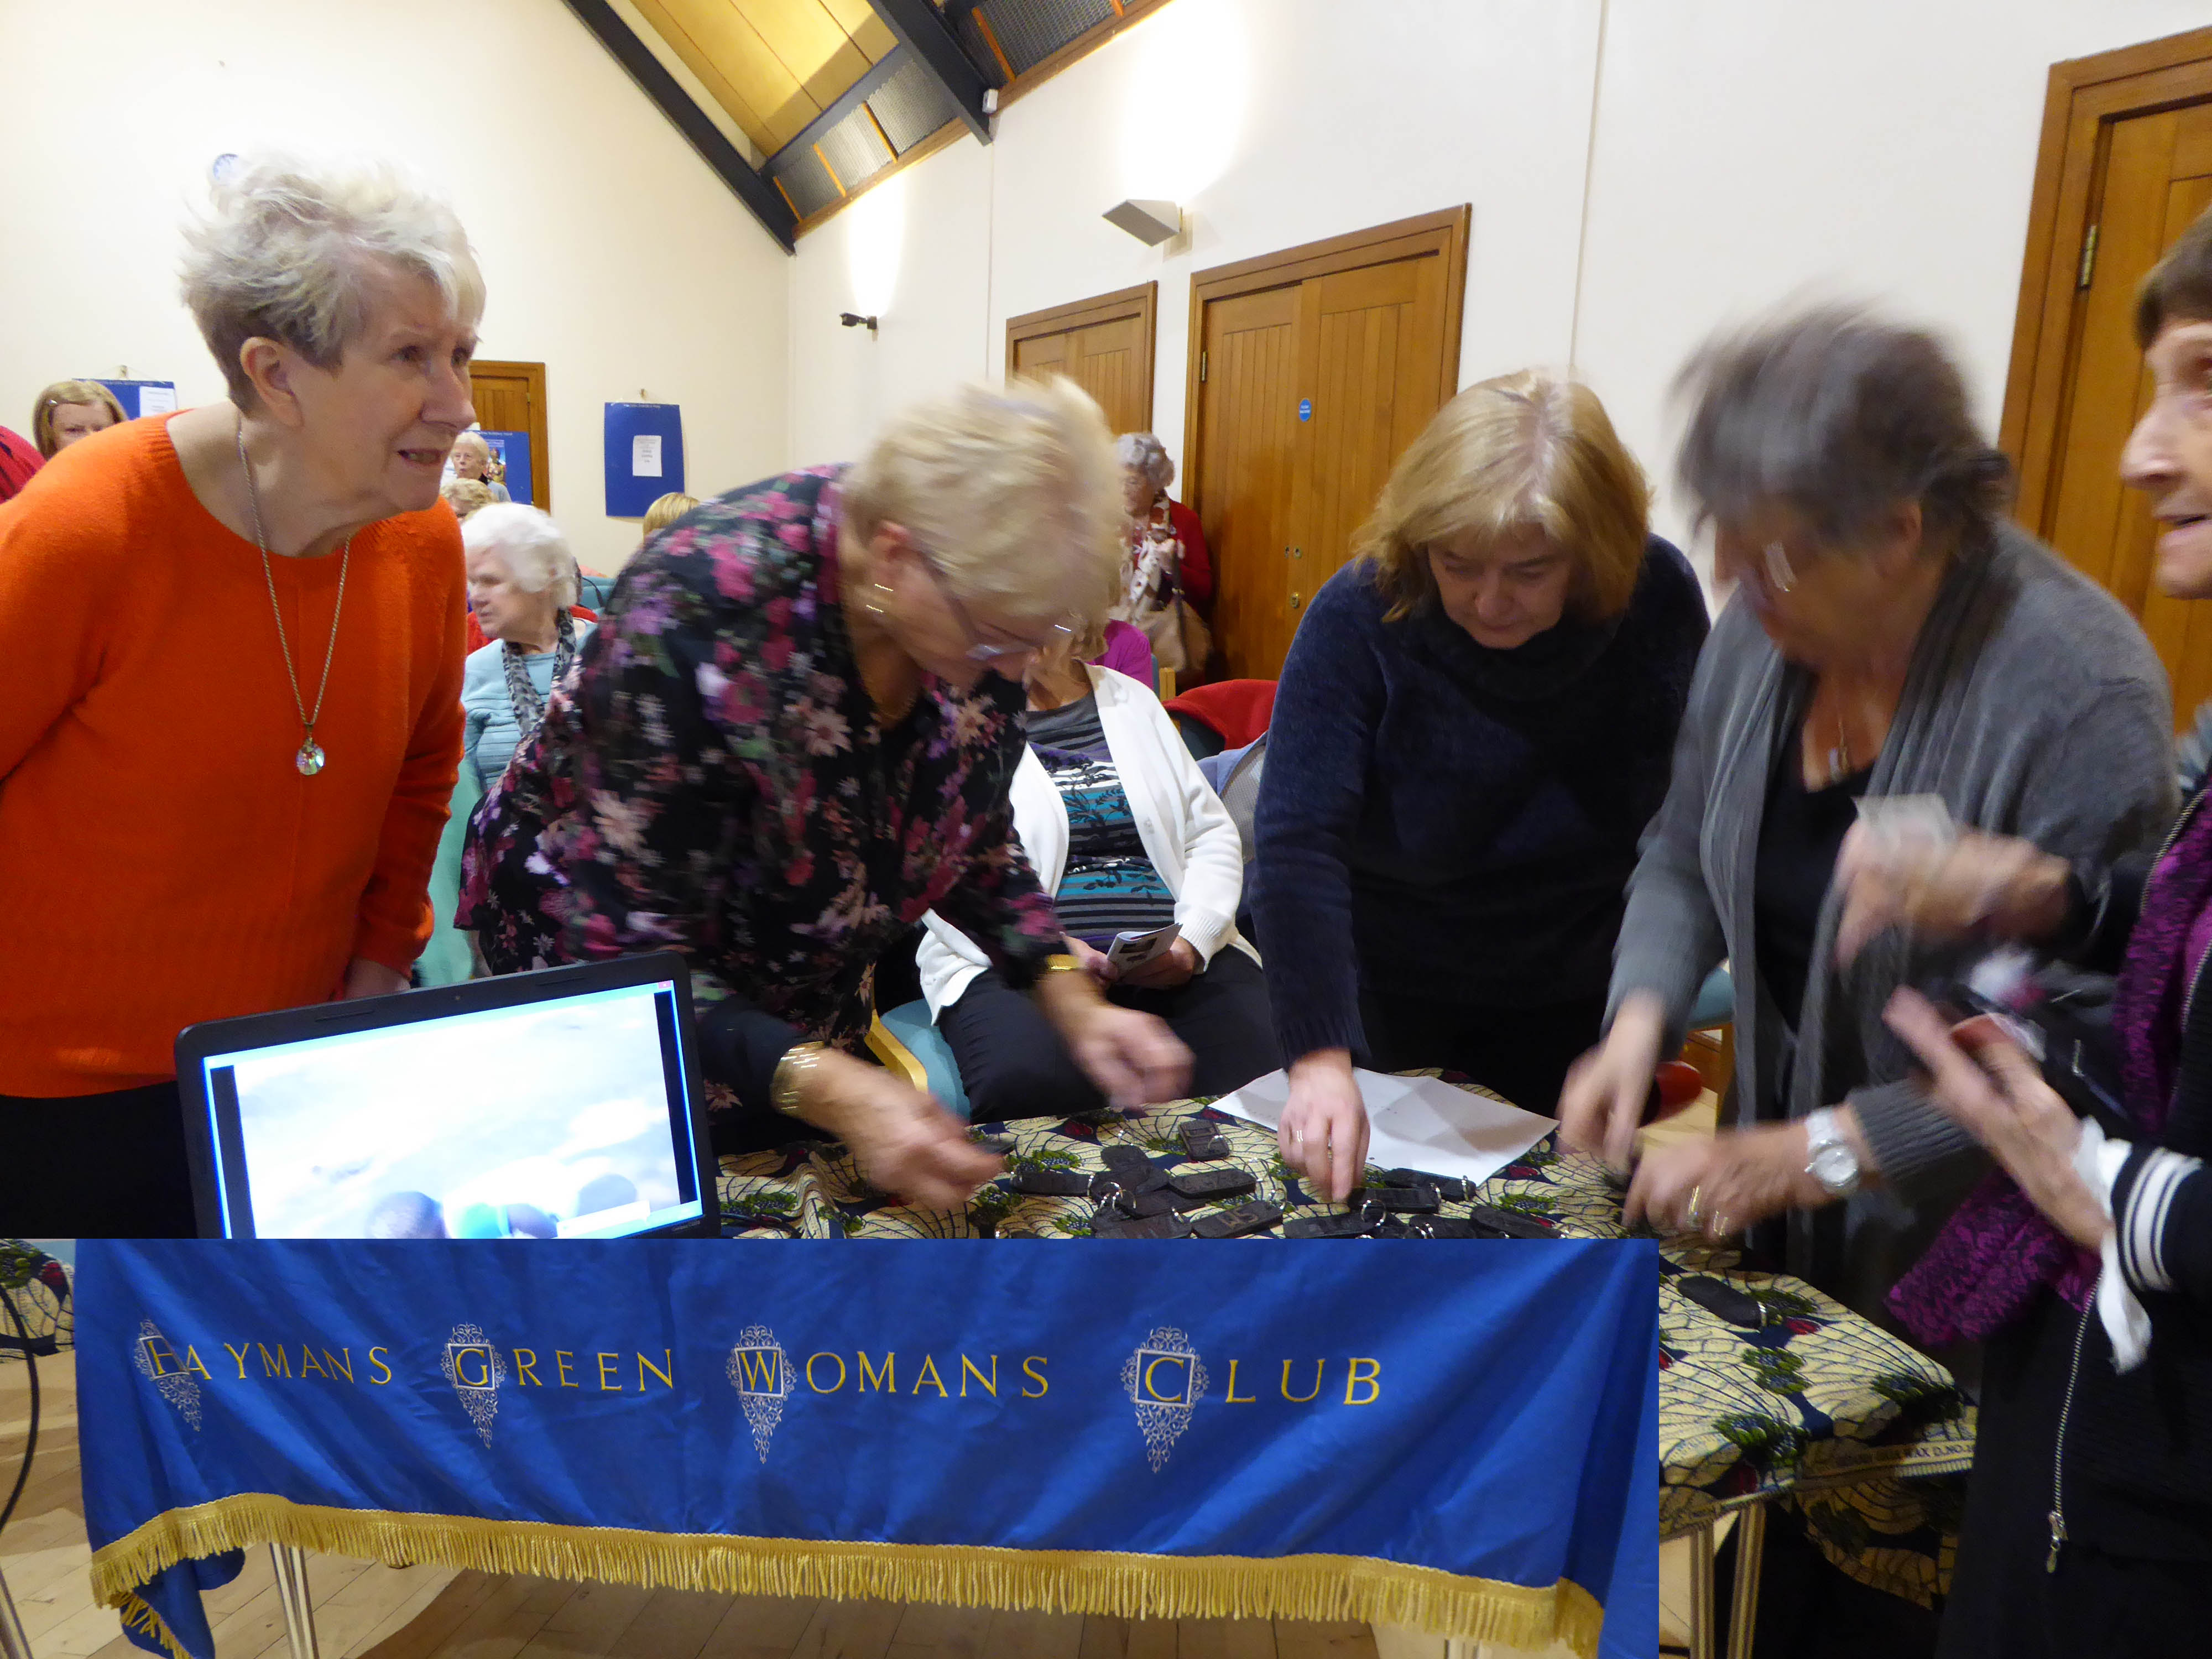 Haymans Green Women's Club finds out about Mamie Martin